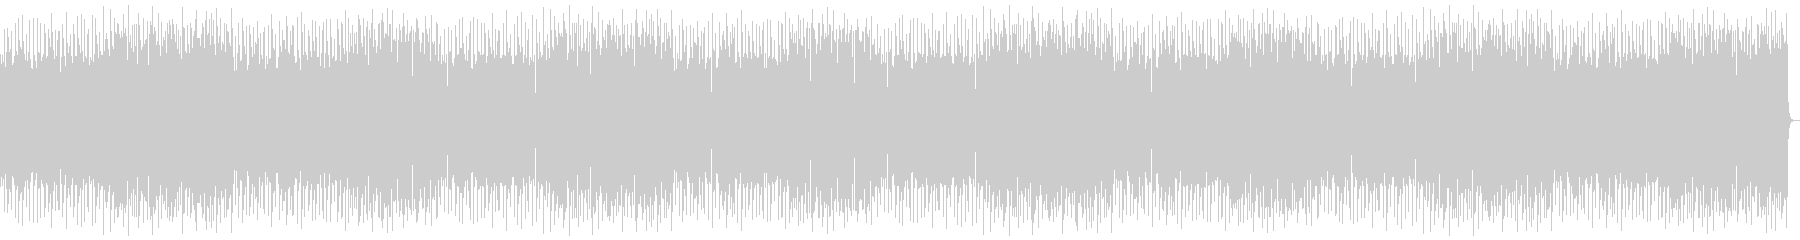 Soothing slow tempo music's unreproduced waveform